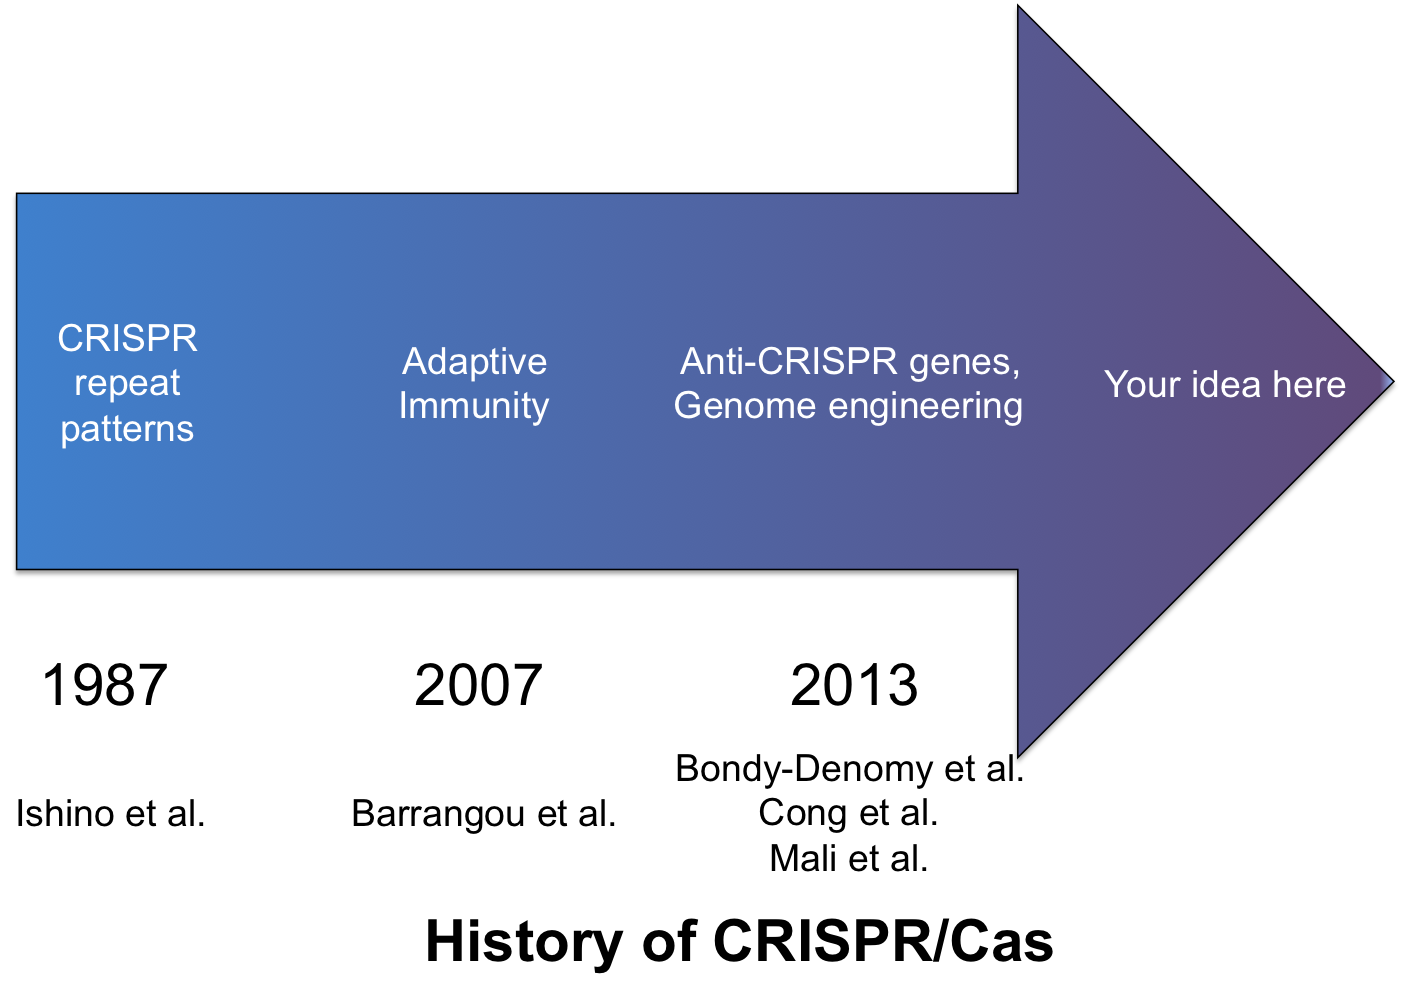 history of CRISPR cas from 1987